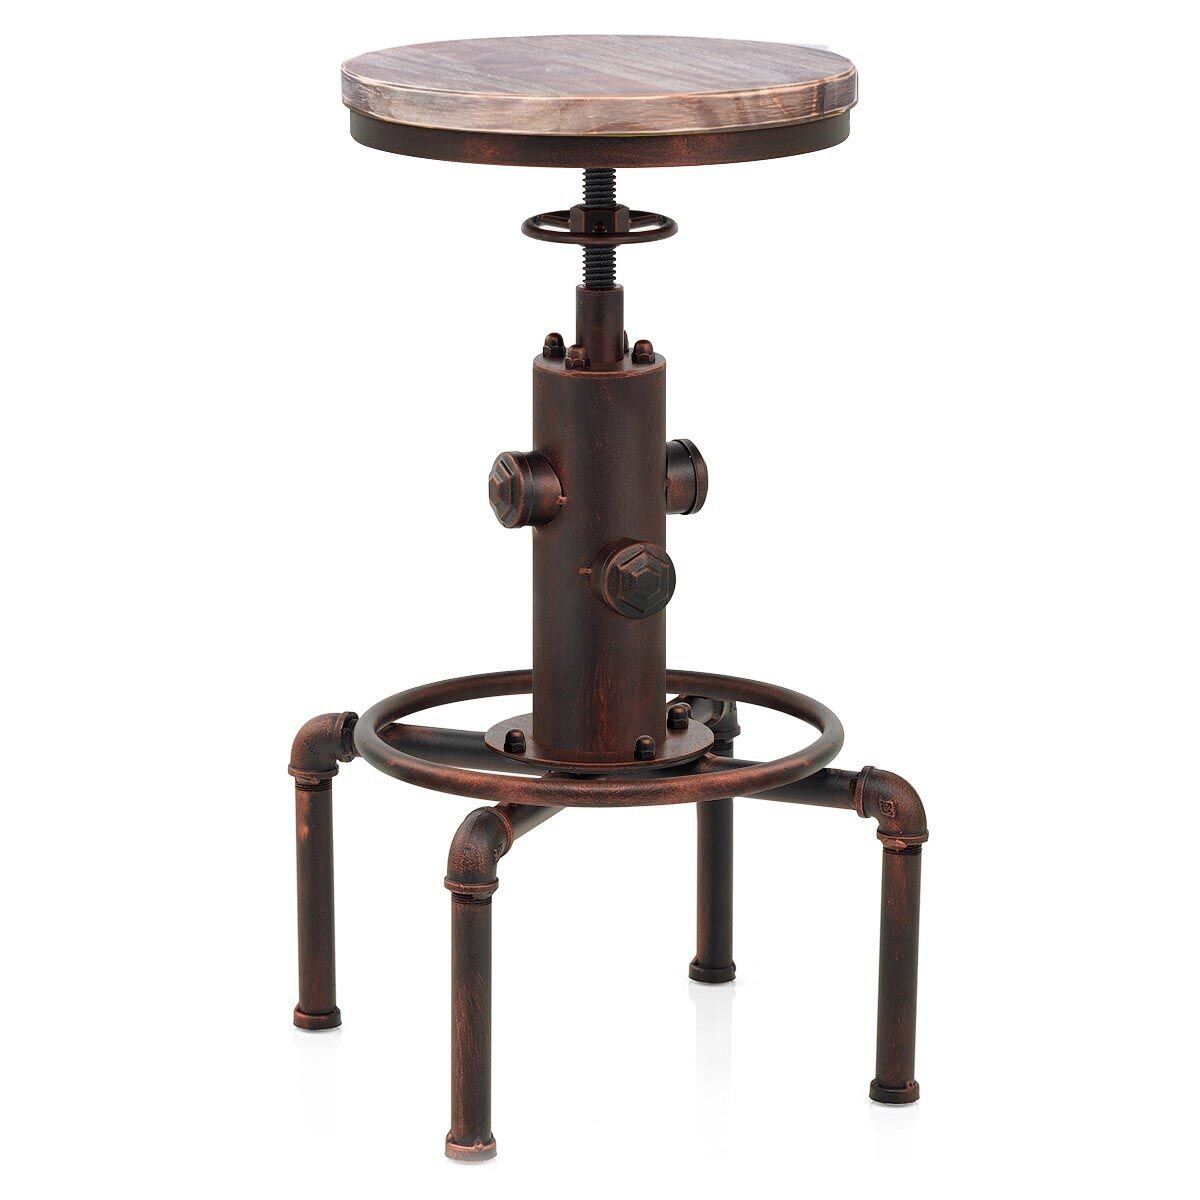 Topower American Antique vintage Industrial Solid Wood Water Pipe Design Cafe Coffe Industrial Bar Stool (Red Bronze)